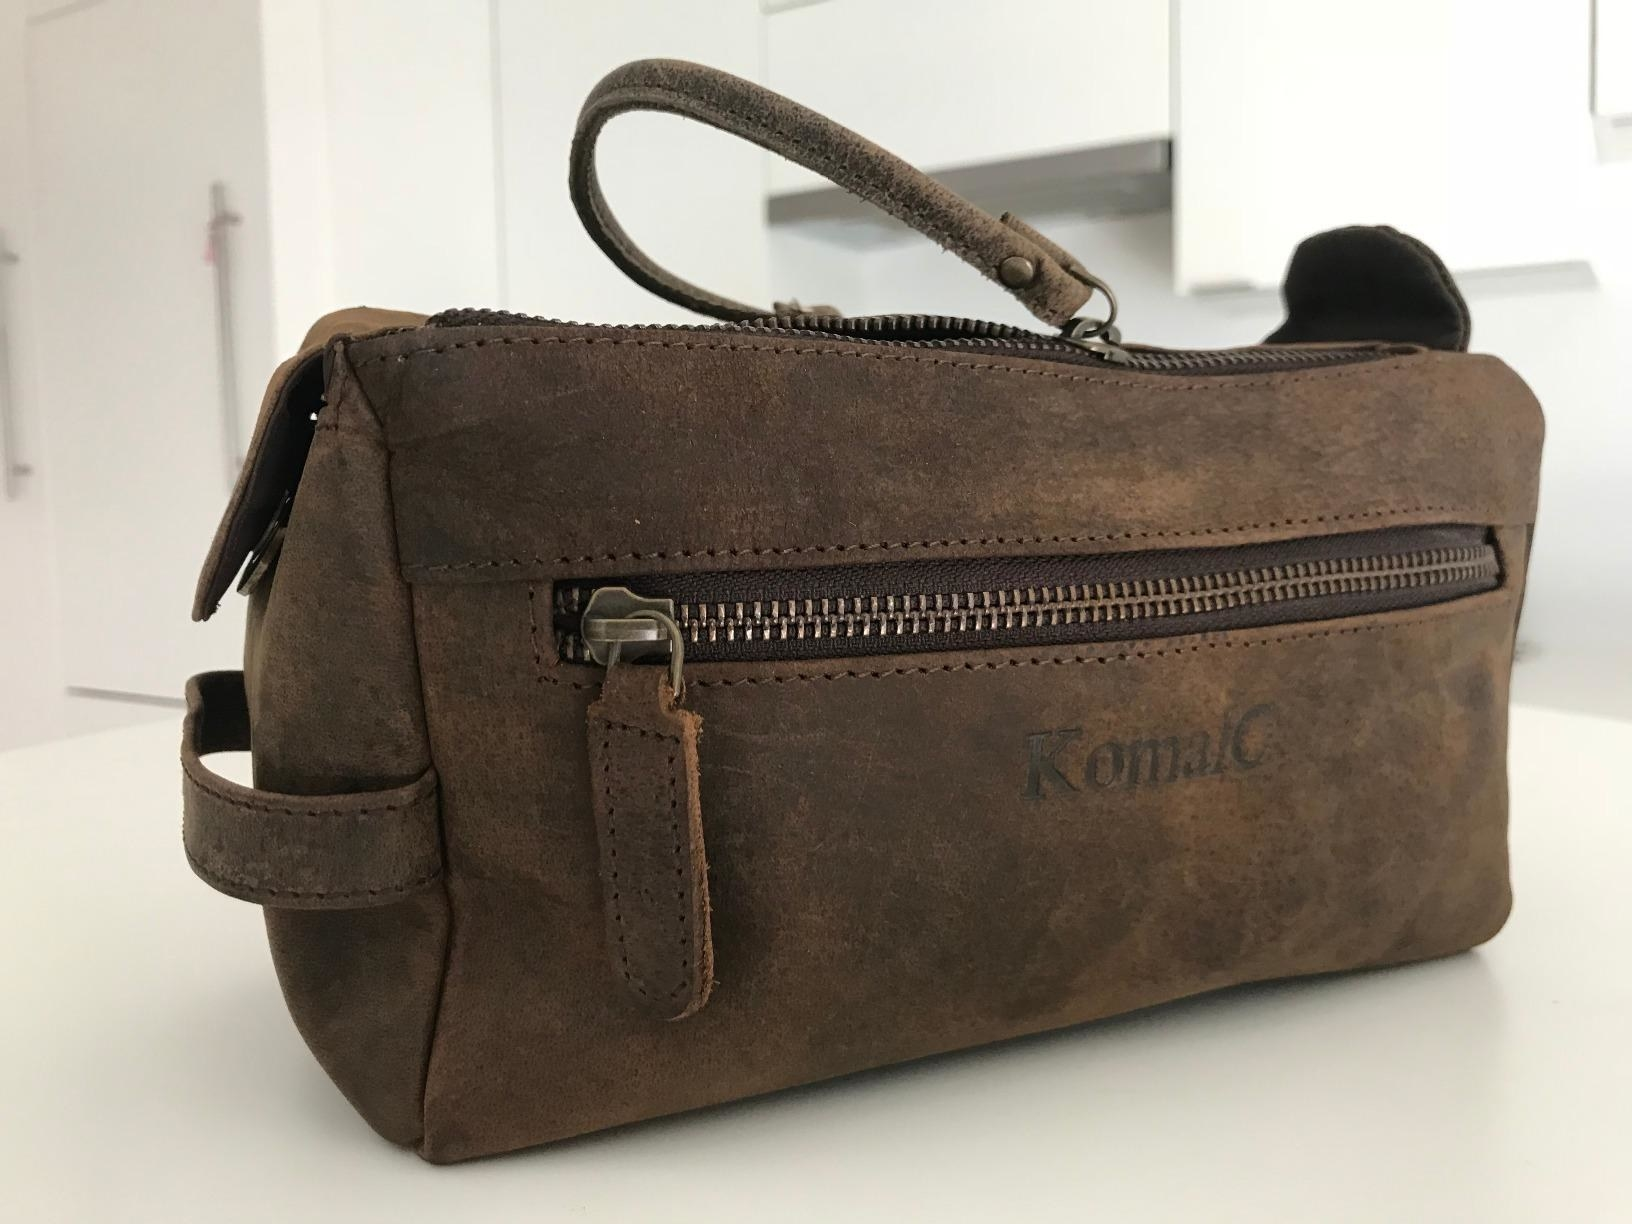 A brown leather dopp kit with two closed zippers